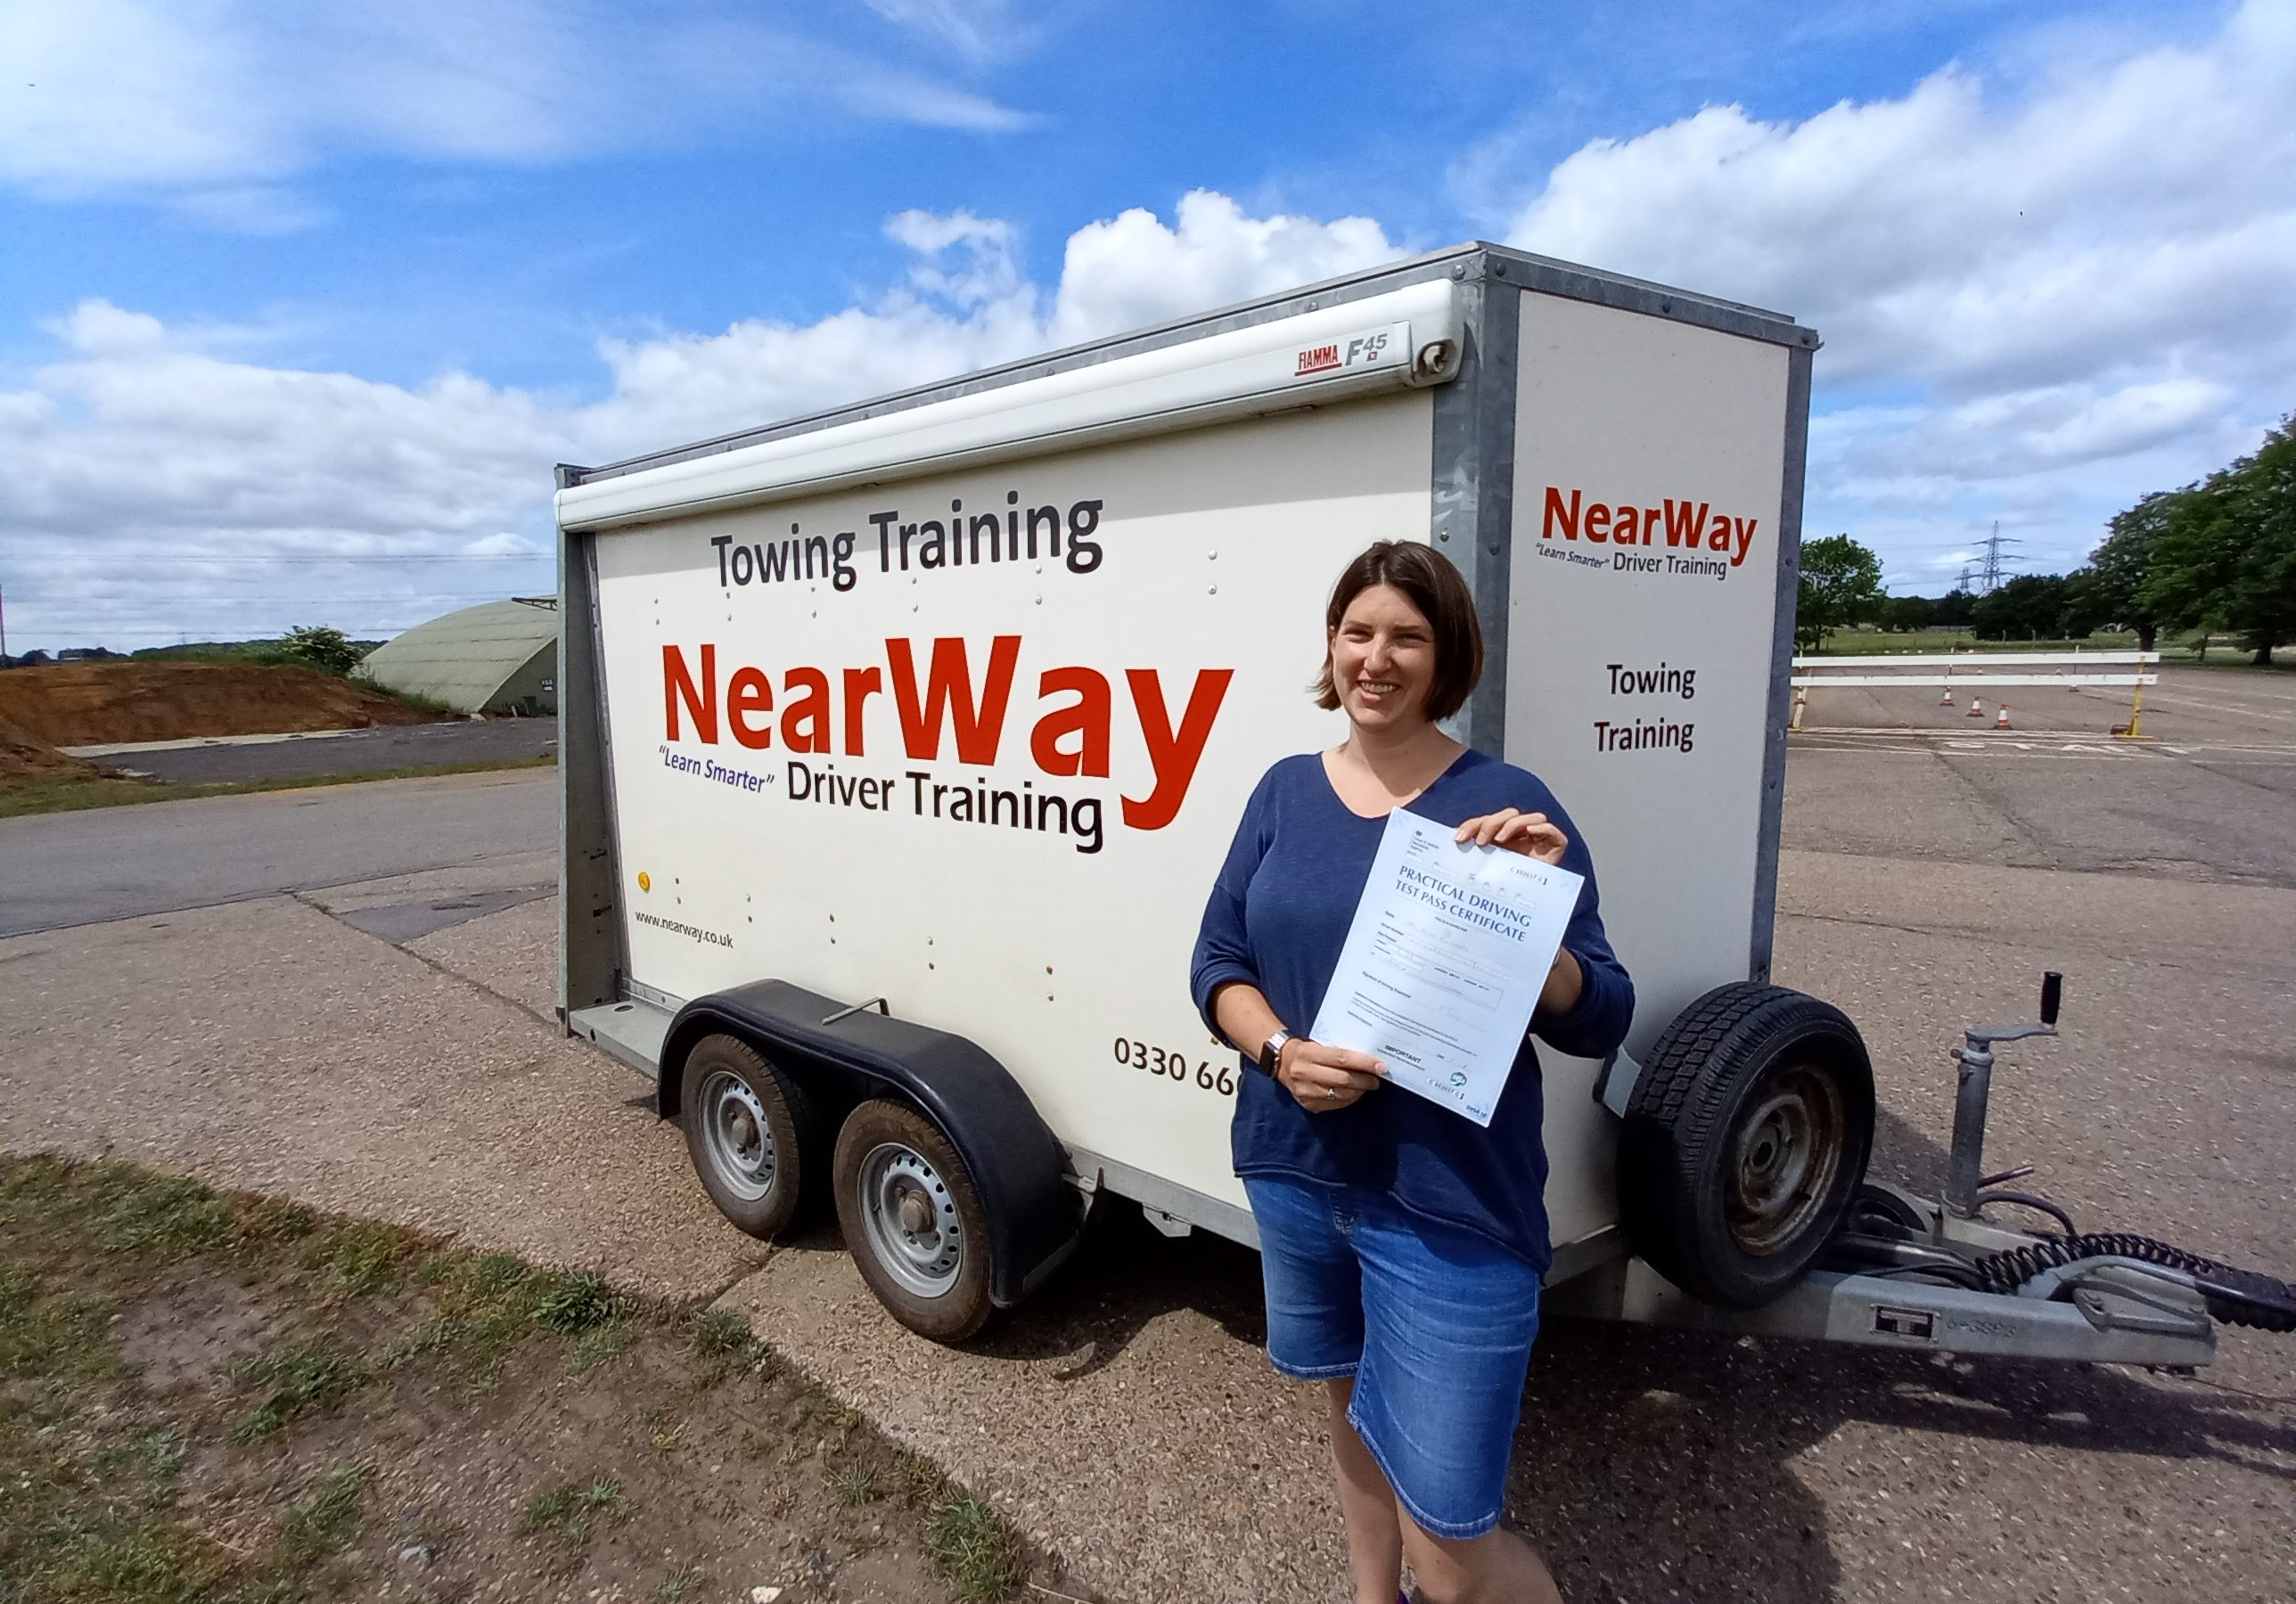 Alice Green Towing Test Pass Oxfordshire